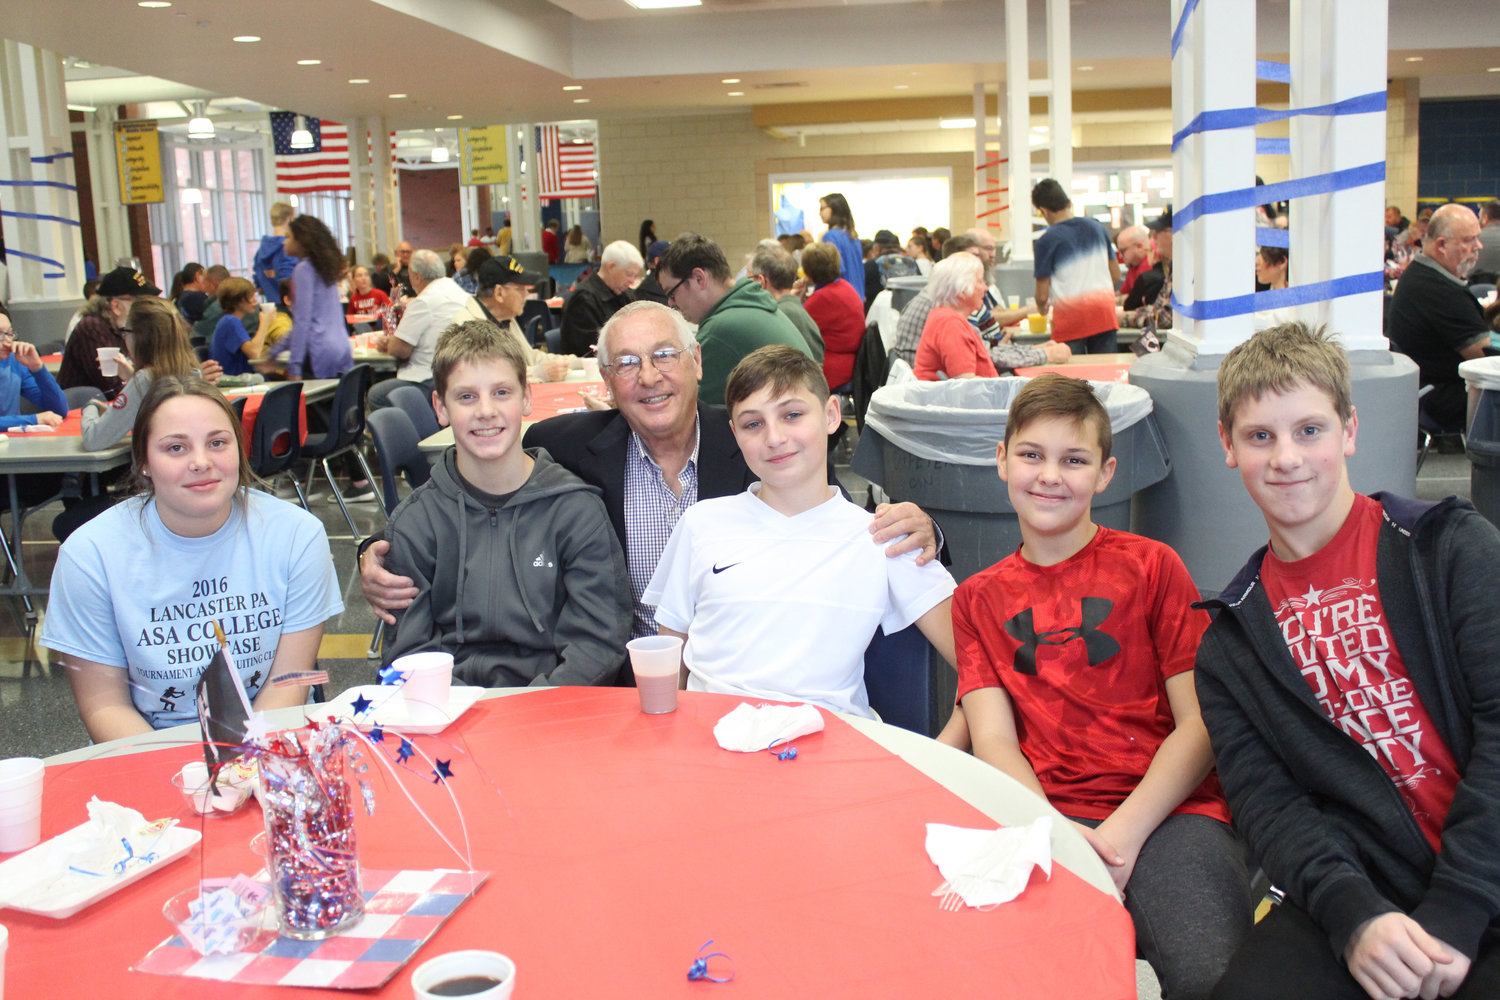 Christine Miller, Geno Corradi, Mario Corradi, Dominic Corradi, Adrian Corradi and Enzo Corradi eat breakfast at MAMS as part of the Veterans Day Program Nov. 9.